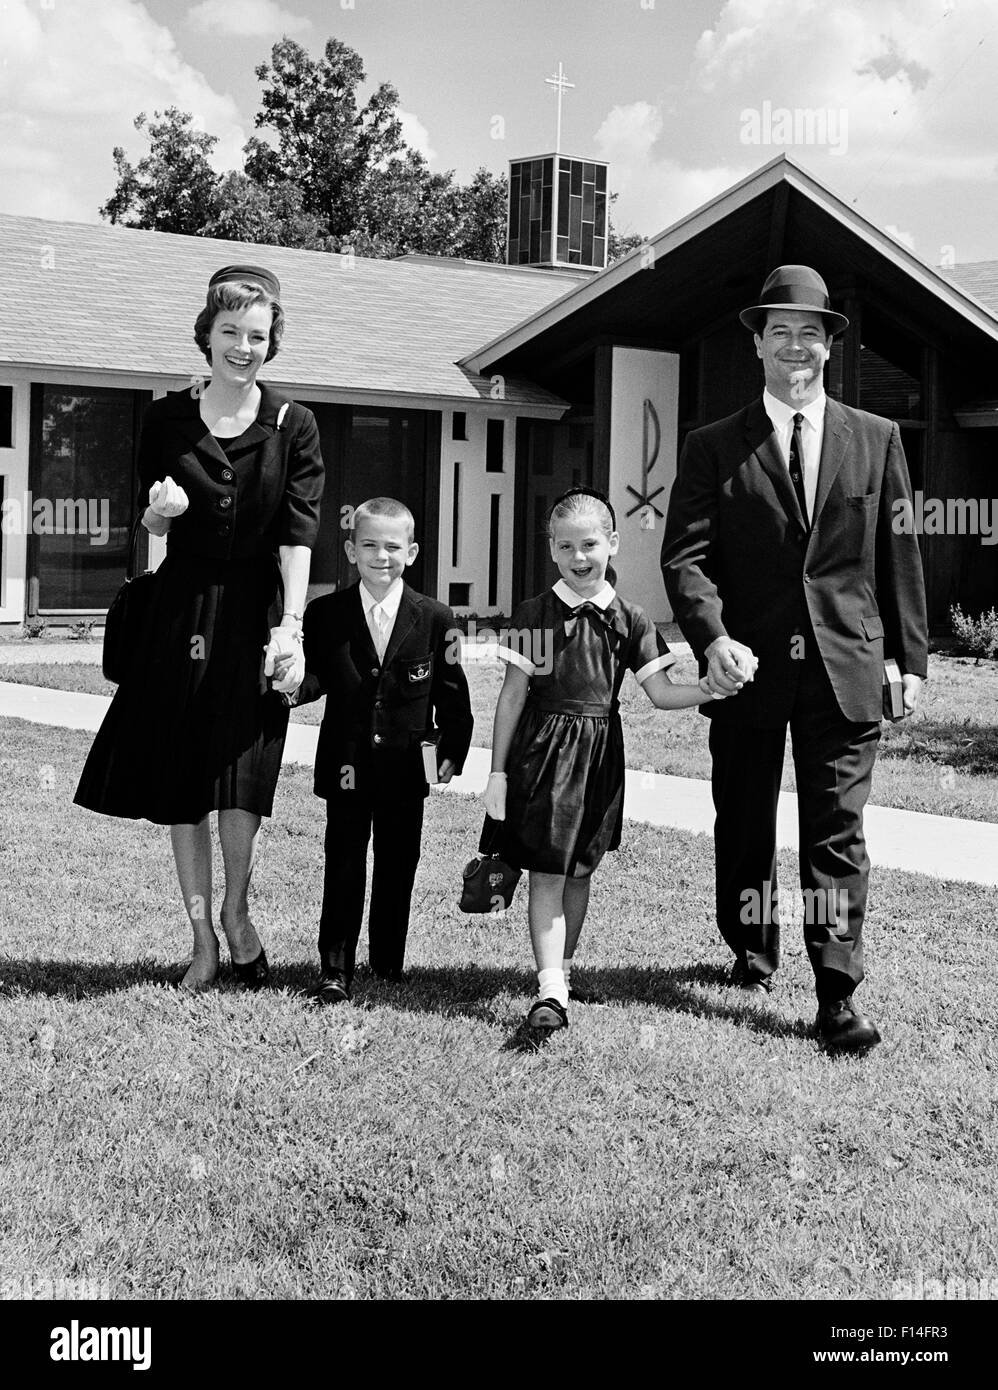 1960s SMILING HAND HOLDING FAMILY OF FOUR MOTHER FATHER SON DAUGHTER WALKING AWAY FROM CHURCH LOOKING AT CAMERA - Stock Image